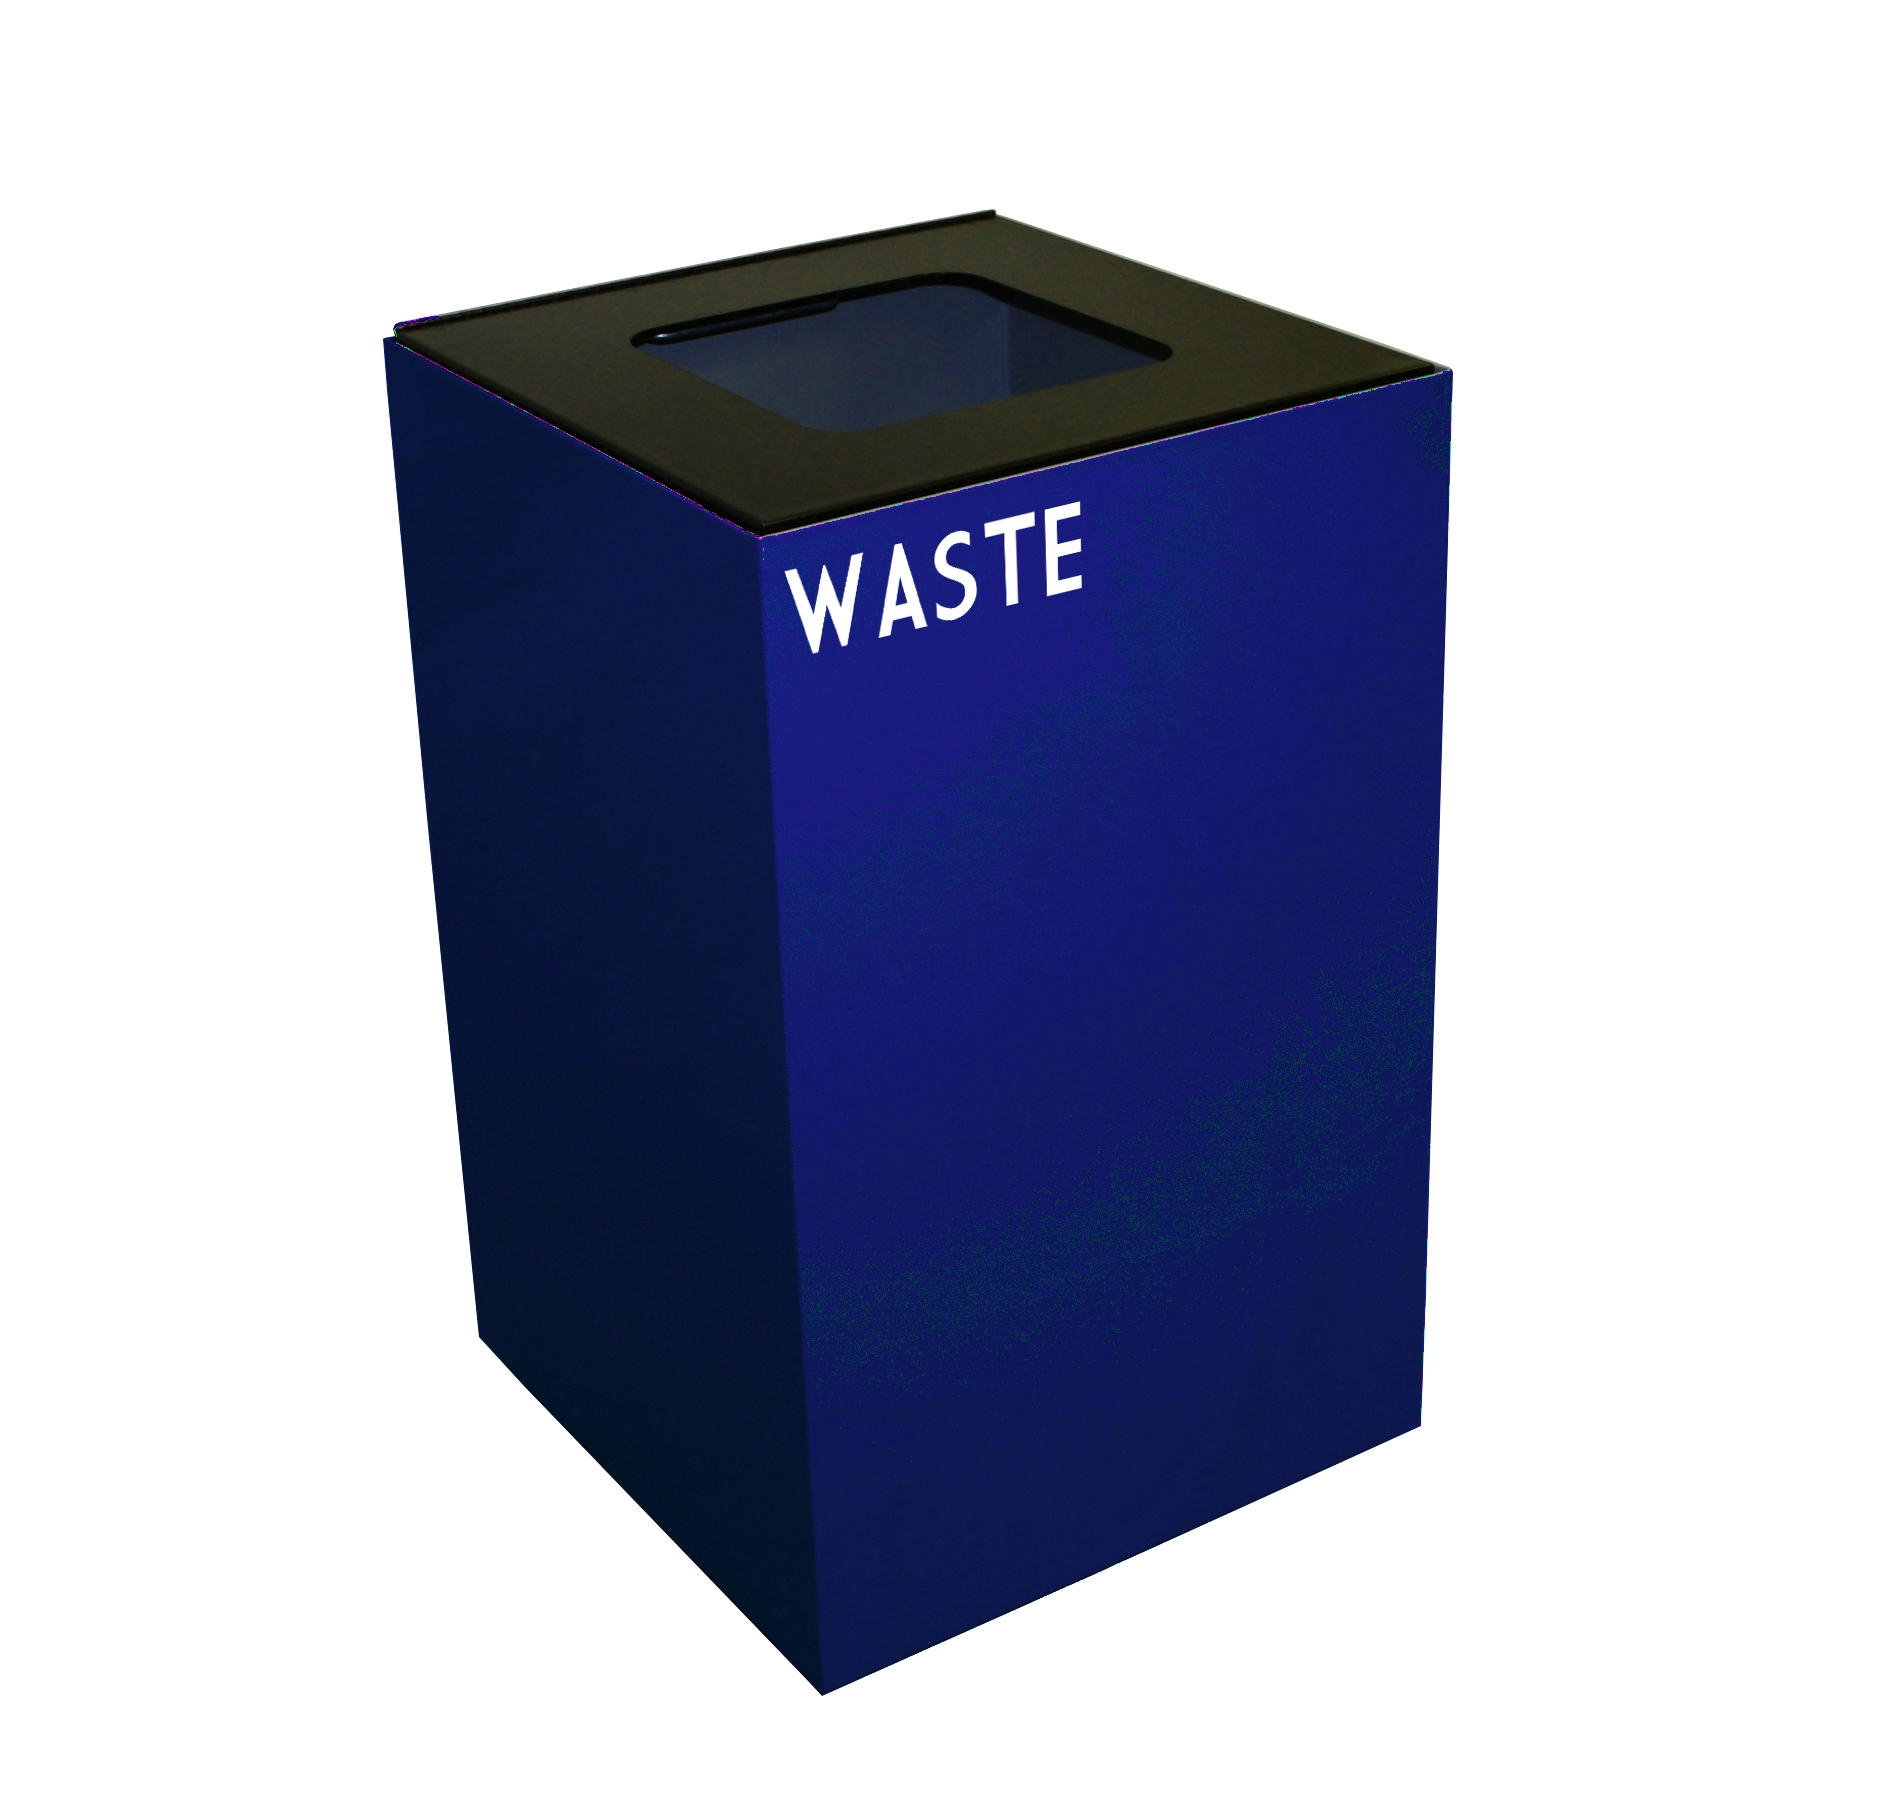 Square Recycling Containers For Waste